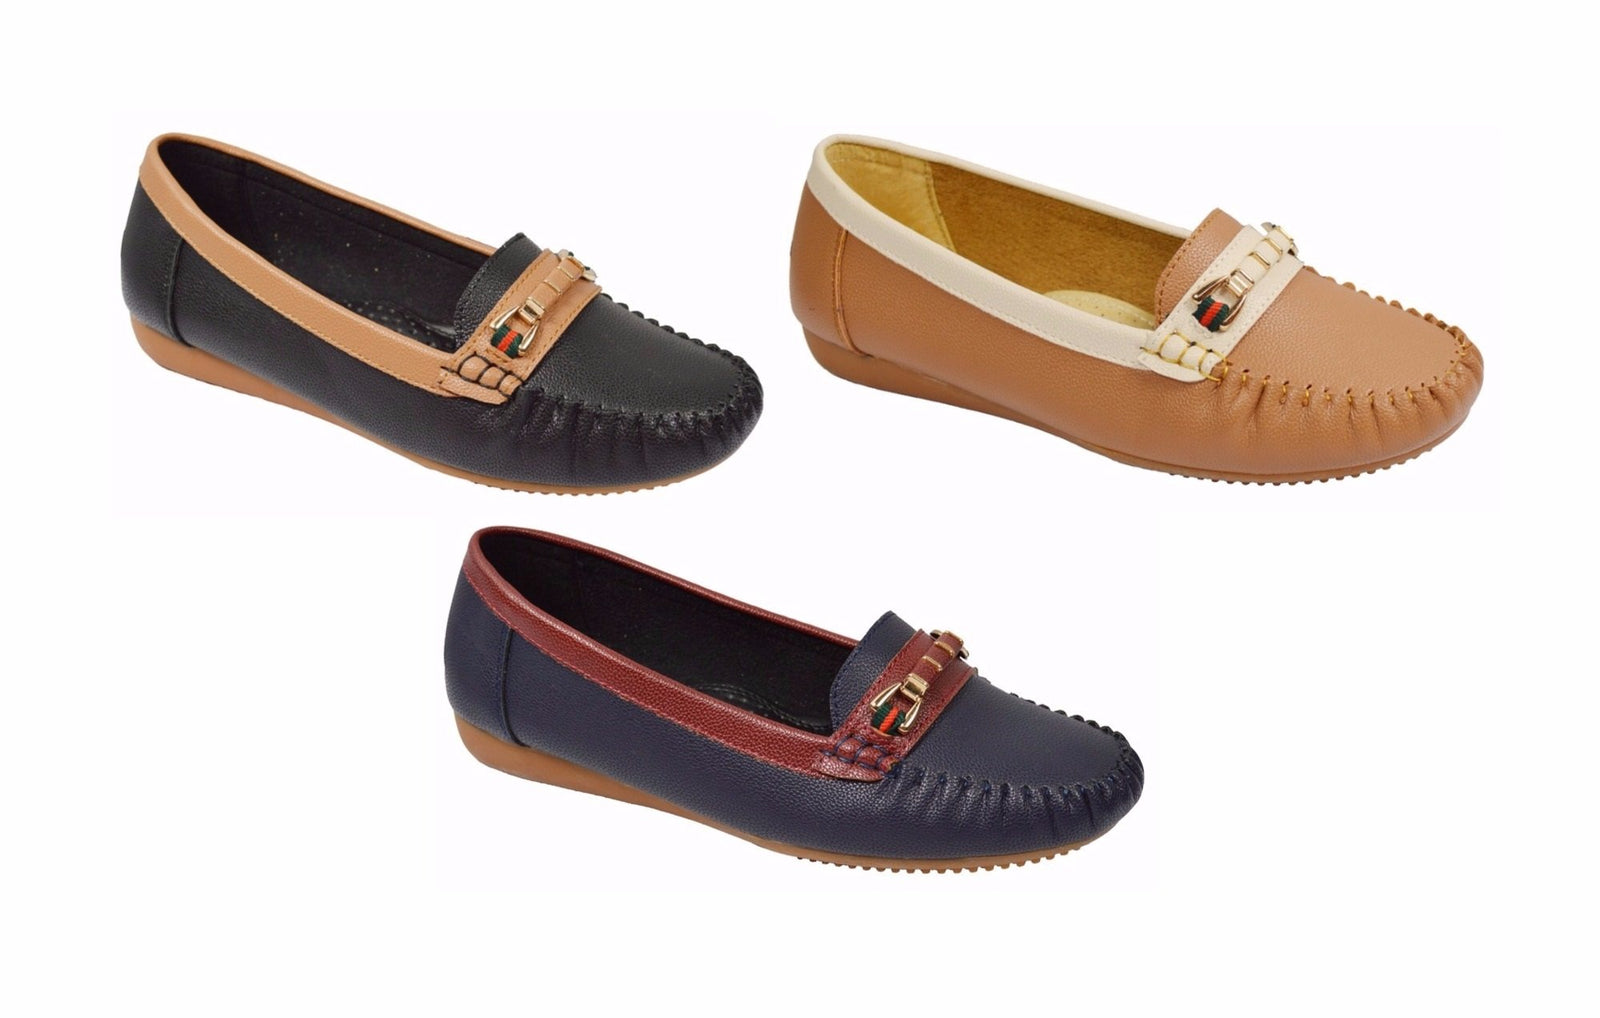 Wholesale Women's Shoes Loafers Slip On Moccasin NGF6